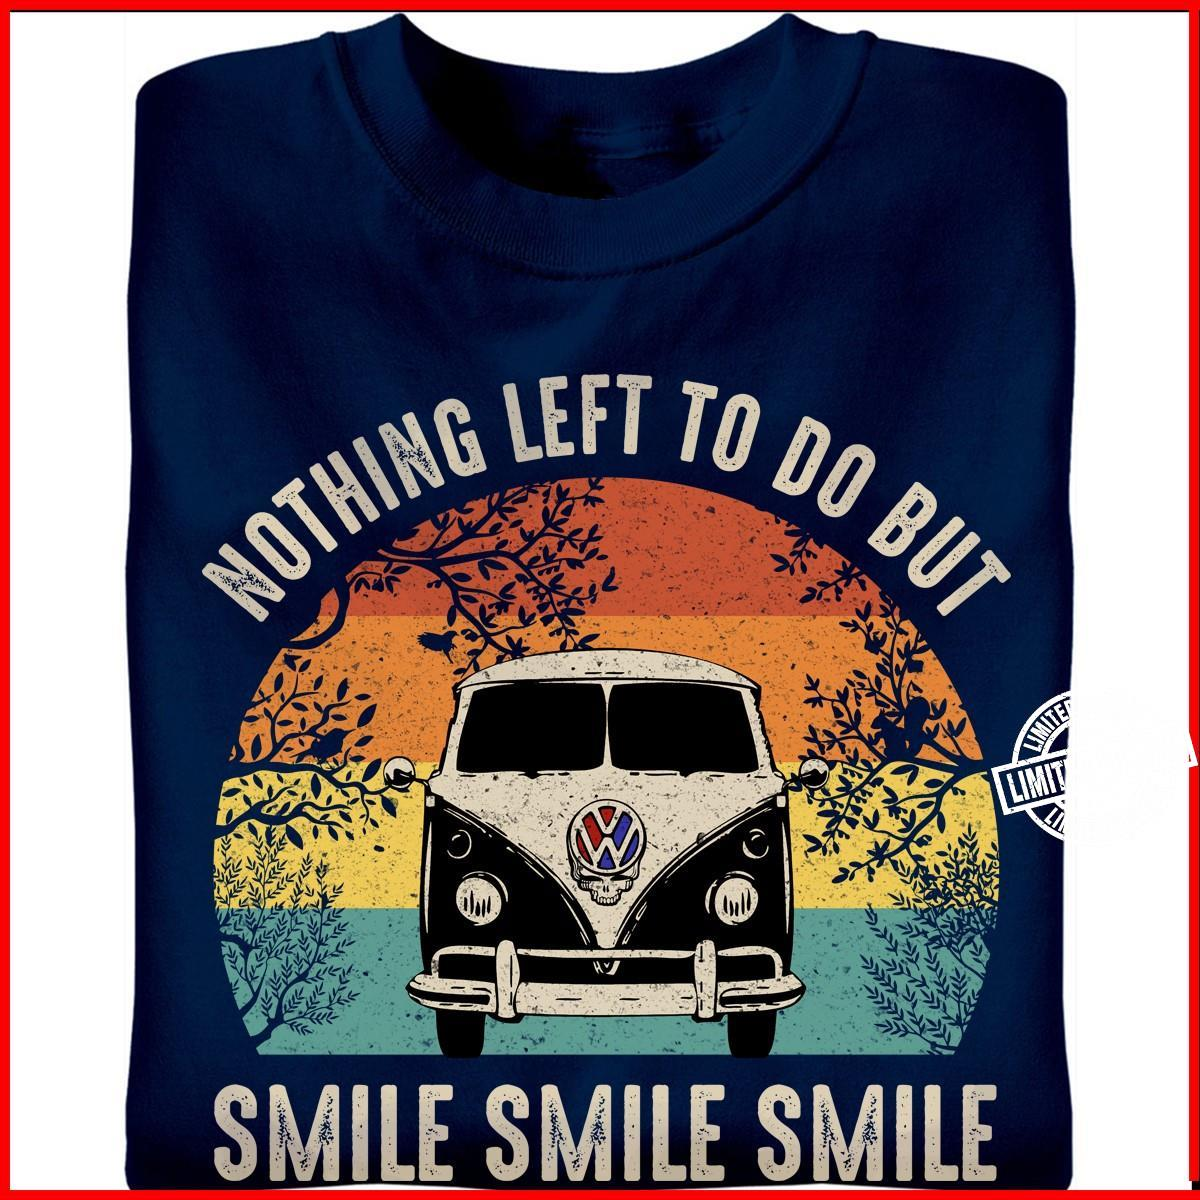 Nothing left to do but smile smile smile shirt